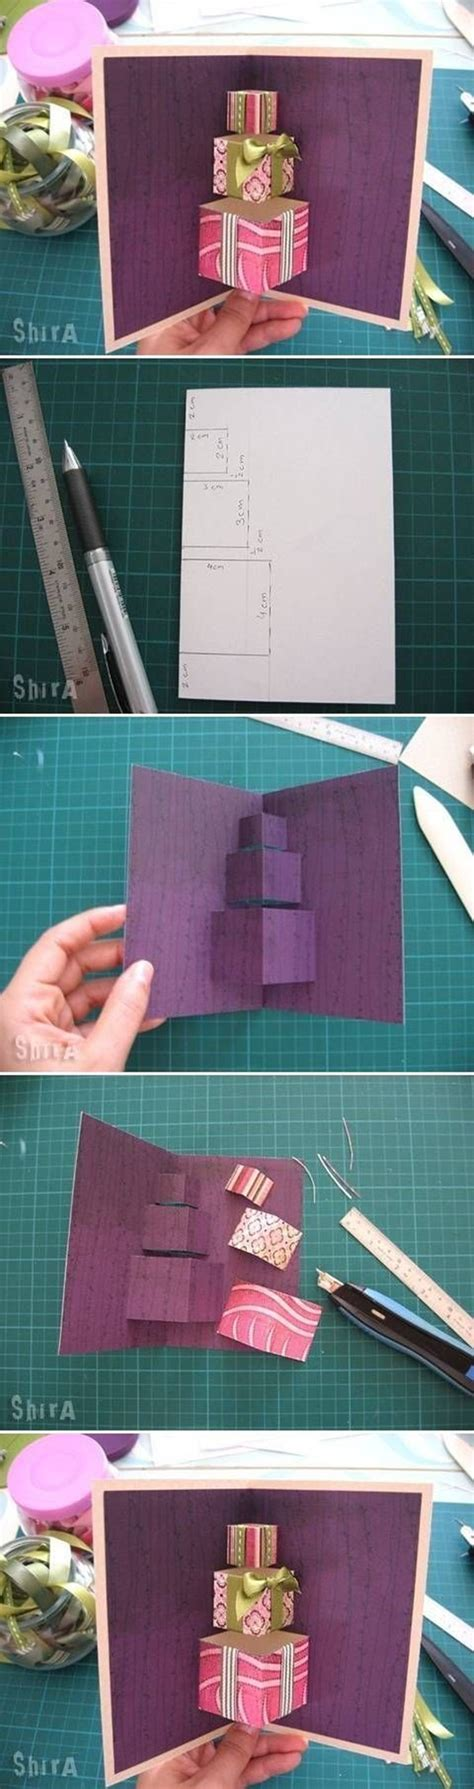 Papercraft Ideas - creative paper craft ideas 30 picked